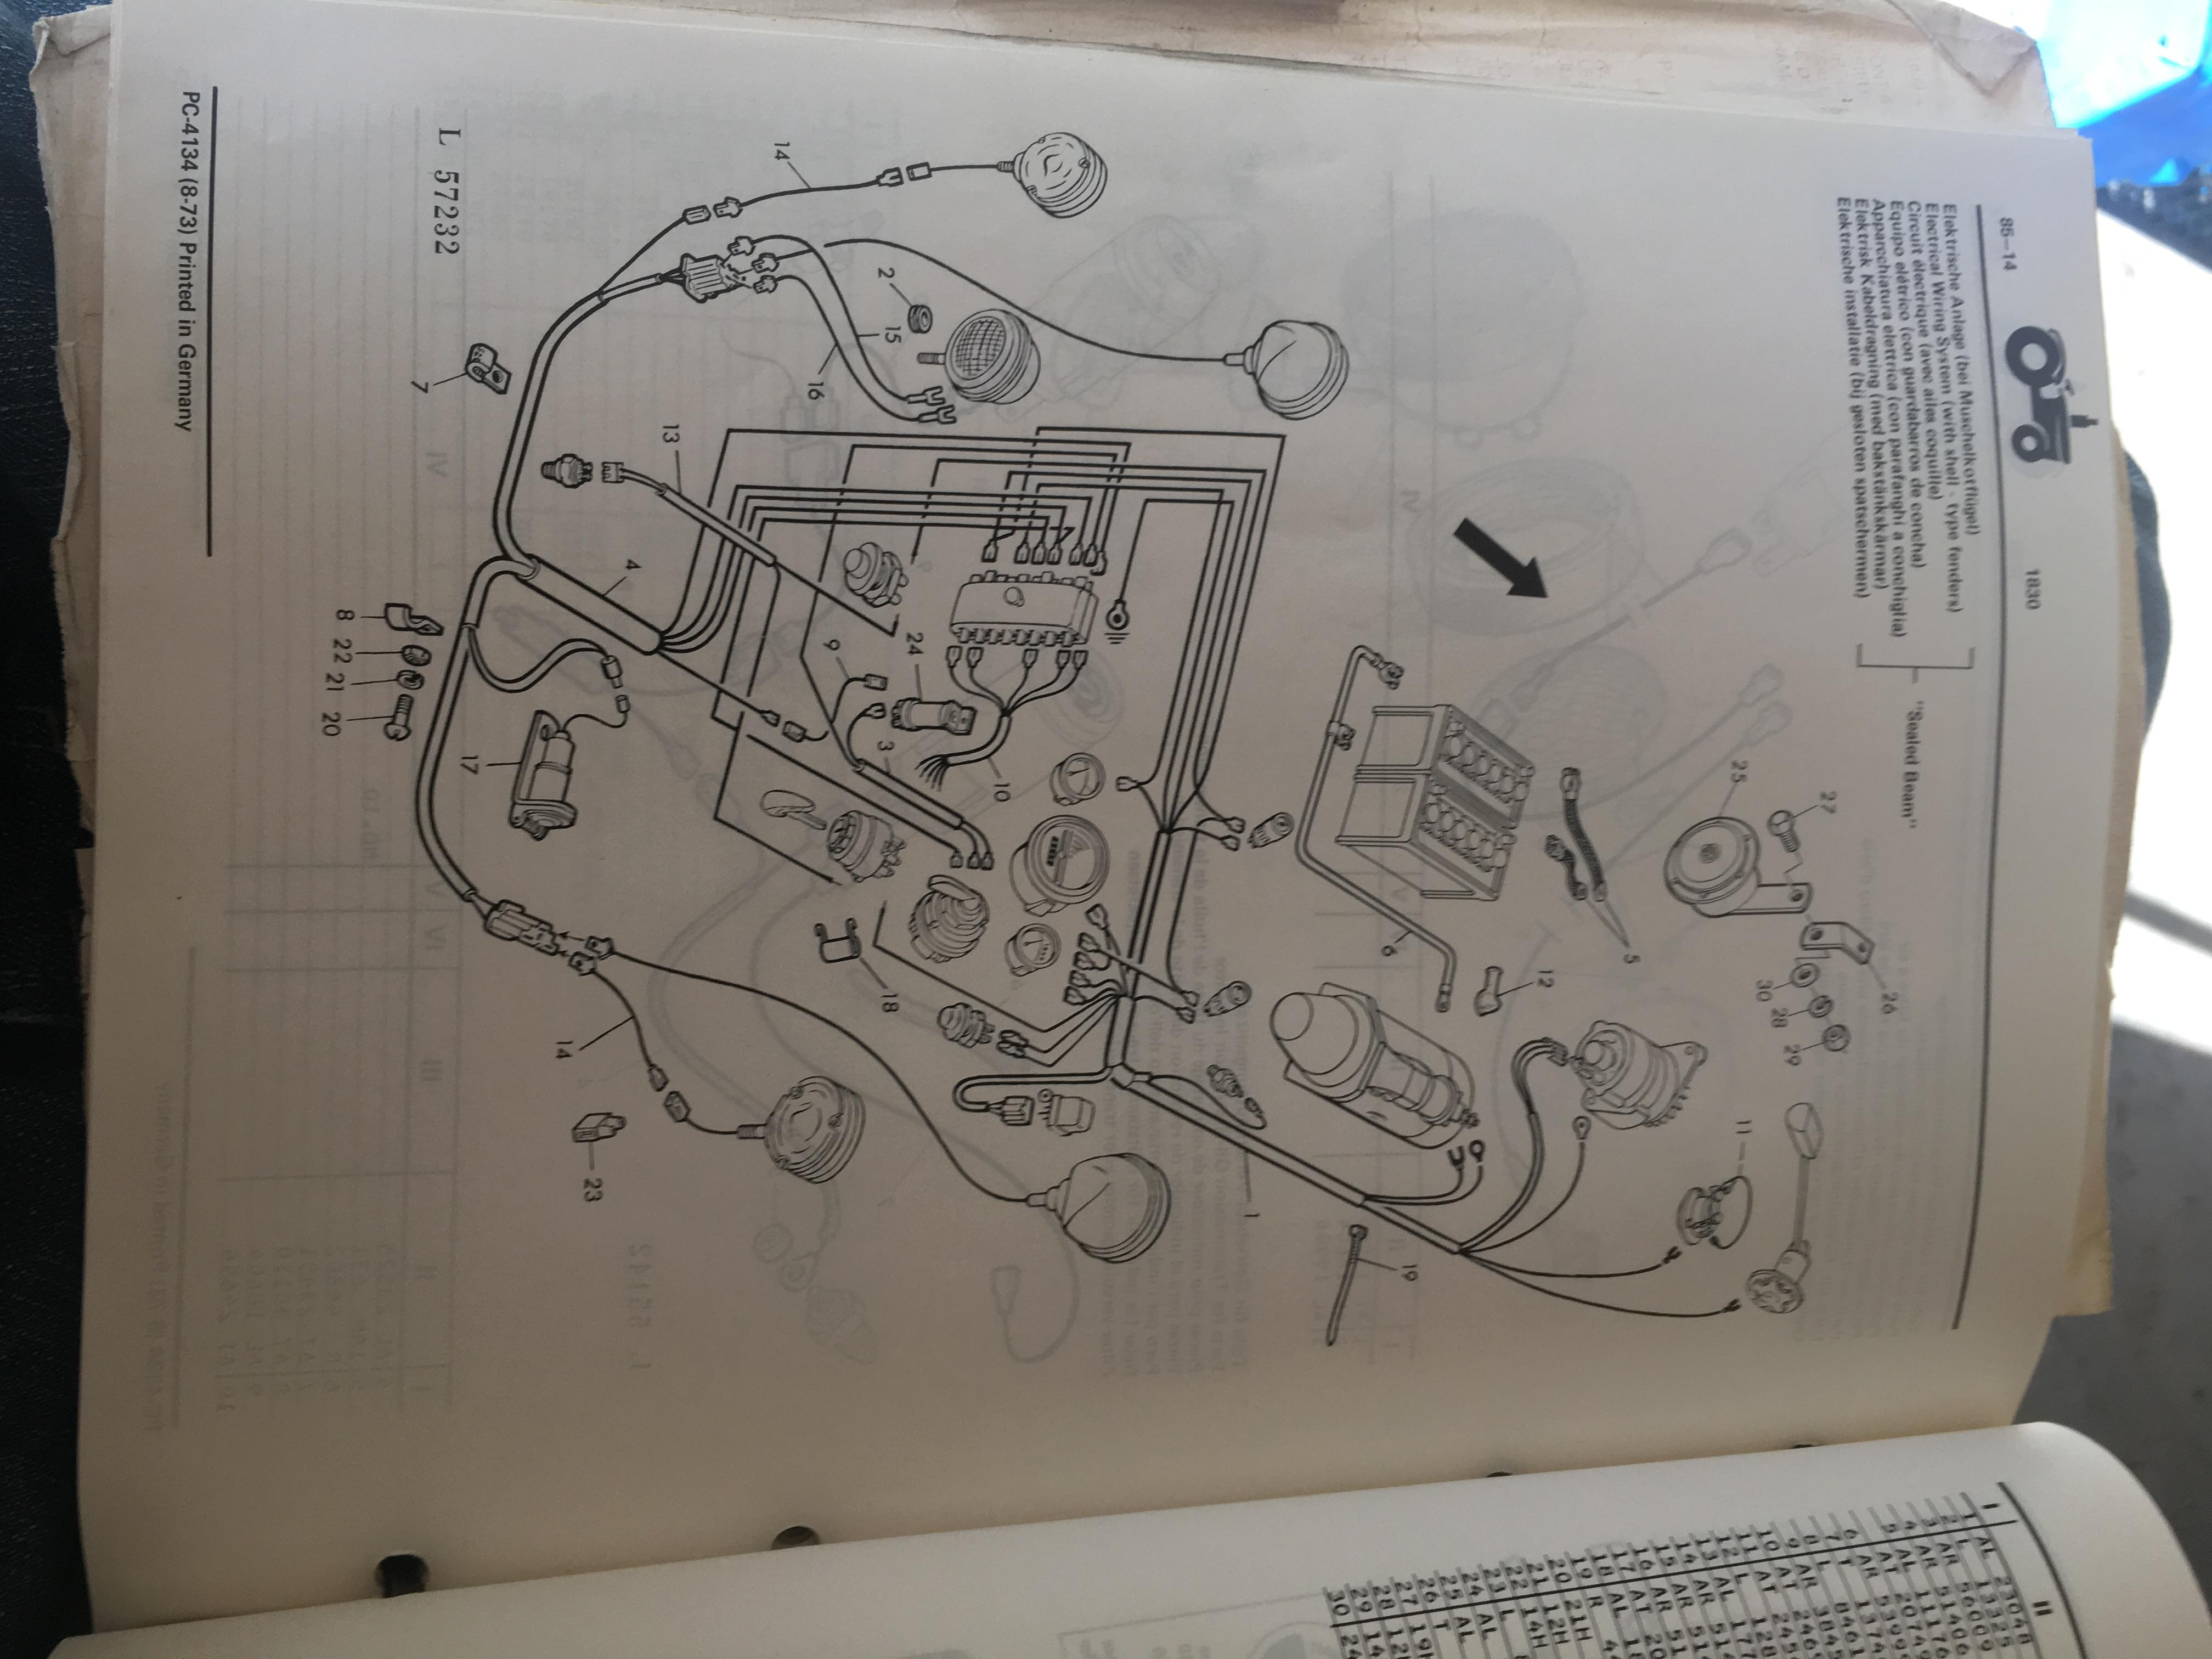 1830 Wiring Diagram needed | Green Tractor Talk on john deere solenoid wiring diagram, john deere z445 wiring diagram, john deere gt242 wiring diagram, john deere x534 wiring diagram, john deere lt180 wiring diagram, john deere x495 wiring diagram, john deere z245 wiring diagram, john deere ignition wiring diagram, john deere tractor wiring diagrams, john deere lx280 wiring diagram, john deere lx279 wiring diagram, john deere gt245 wiring diagram, john deere la115 wiring diagram, john deere x304 wiring diagram, john deere x475 wiring diagram, john deere x324 wiring diagram, john deere x720 wiring diagram, john deere x740 wiring diagram, john deere x360 wiring diagram, john deere gx335 wiring diagram,